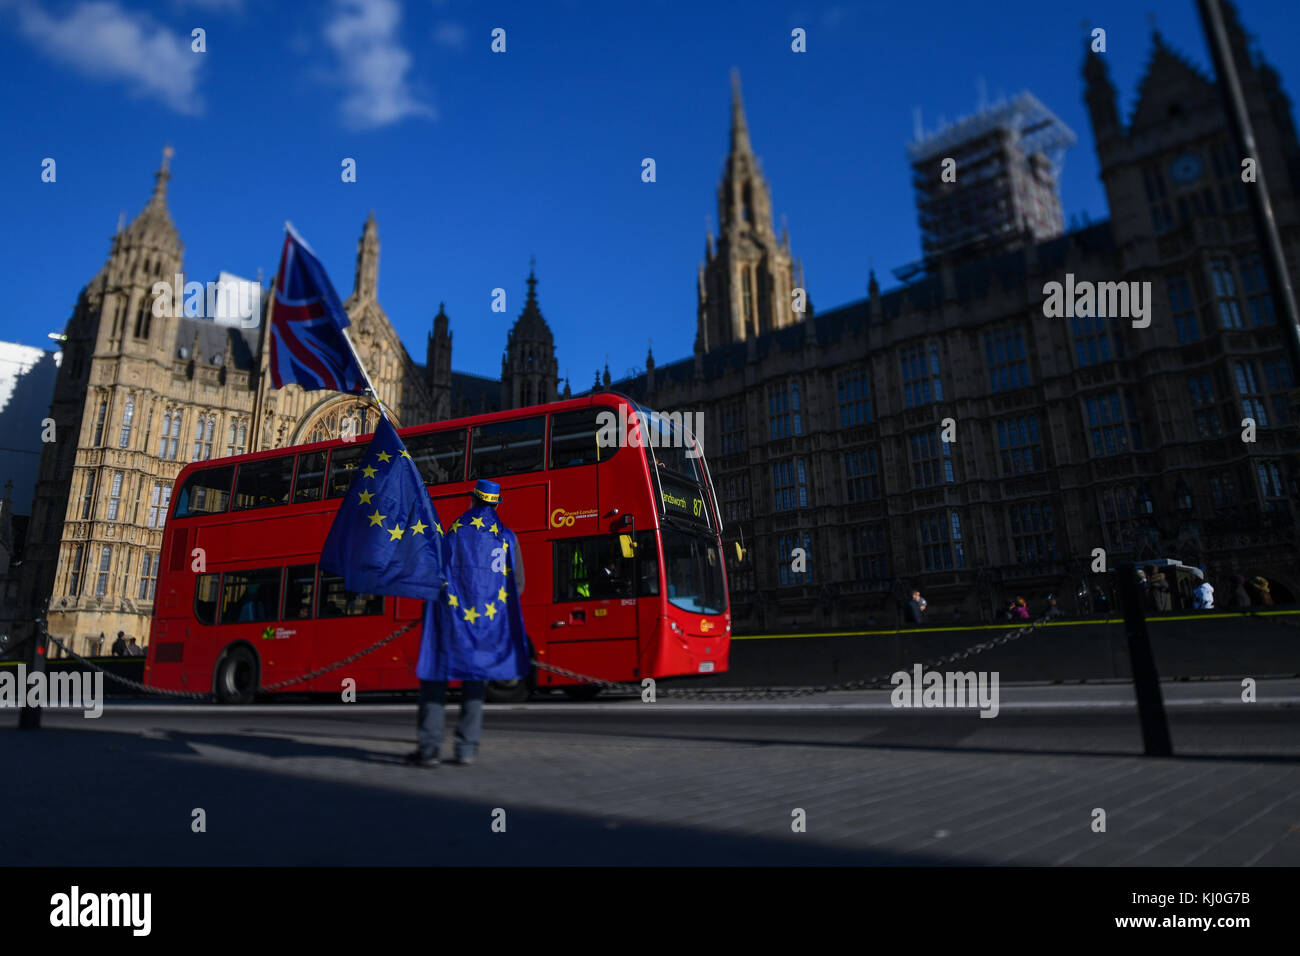 Tony Greenstein Blog: Stop Brexit Stock Photos & Stop Brexit Stock Images